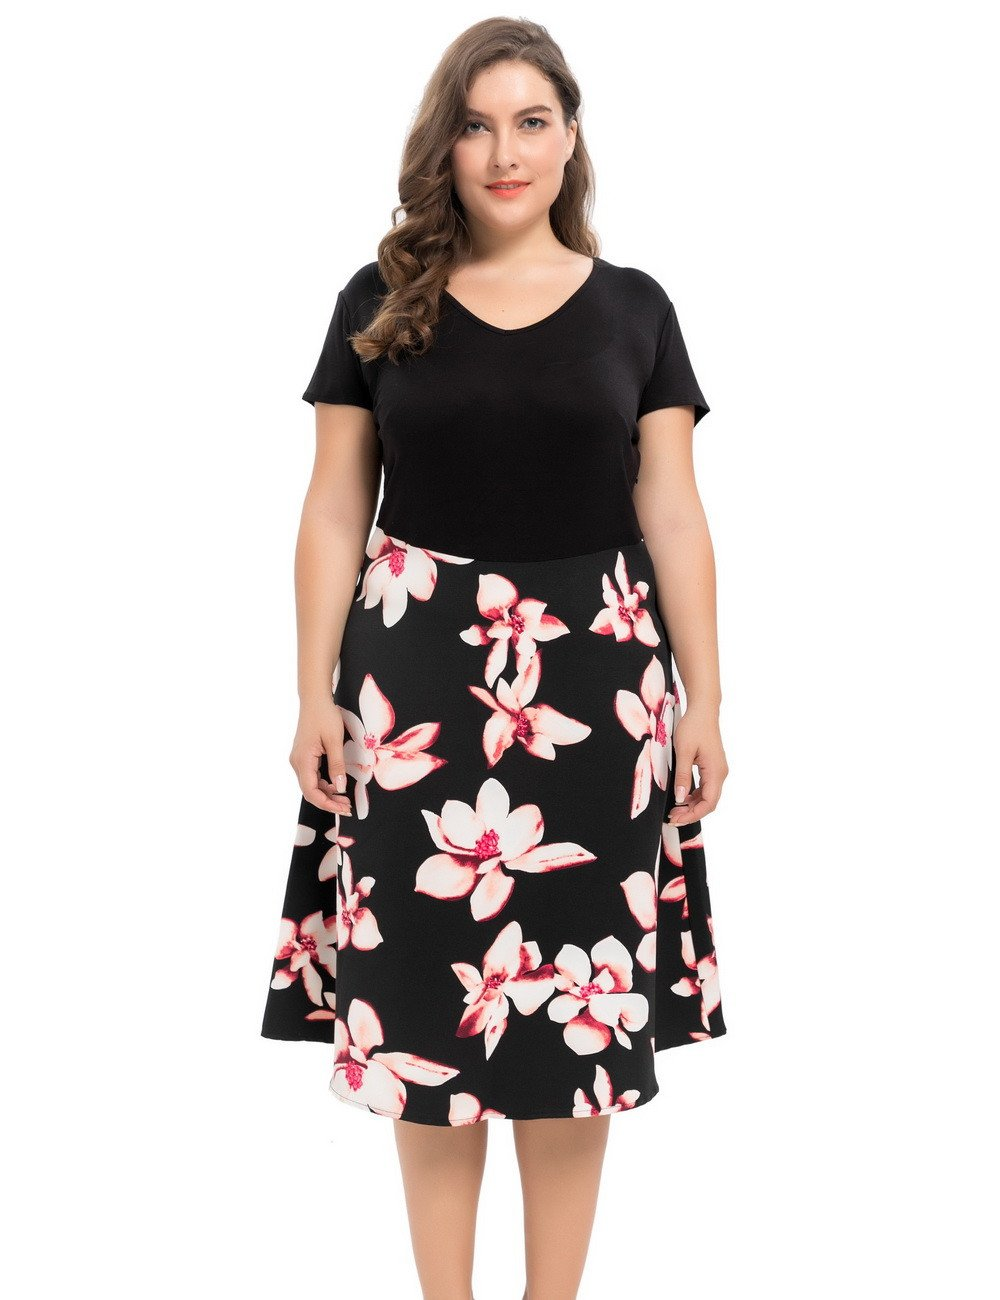 Chicwe Women's Vintage Style Plus Size Floral Printed Dress 1X-4X - eileenshoppingdeals